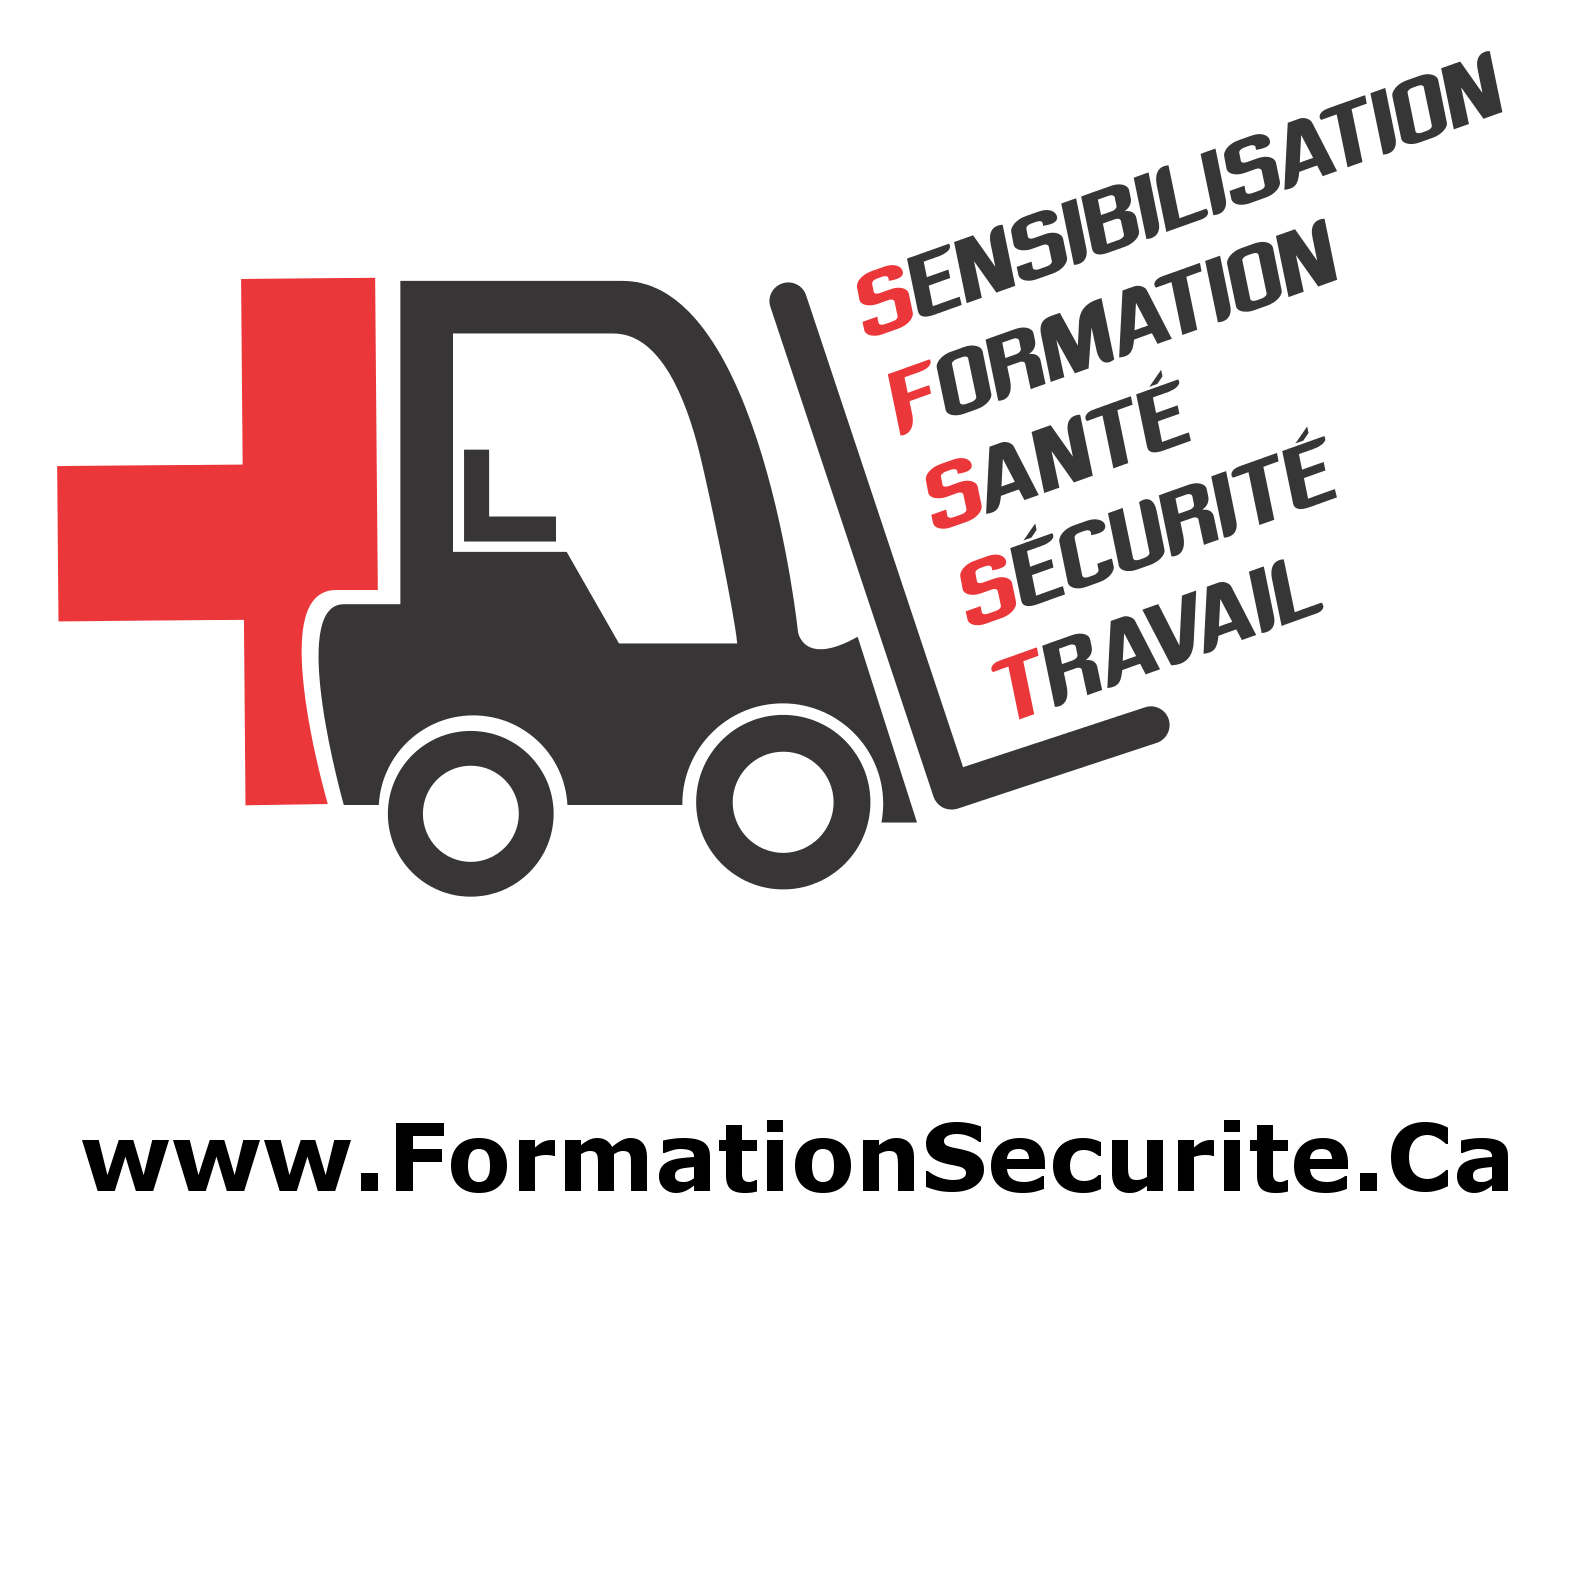 Formationsecurite